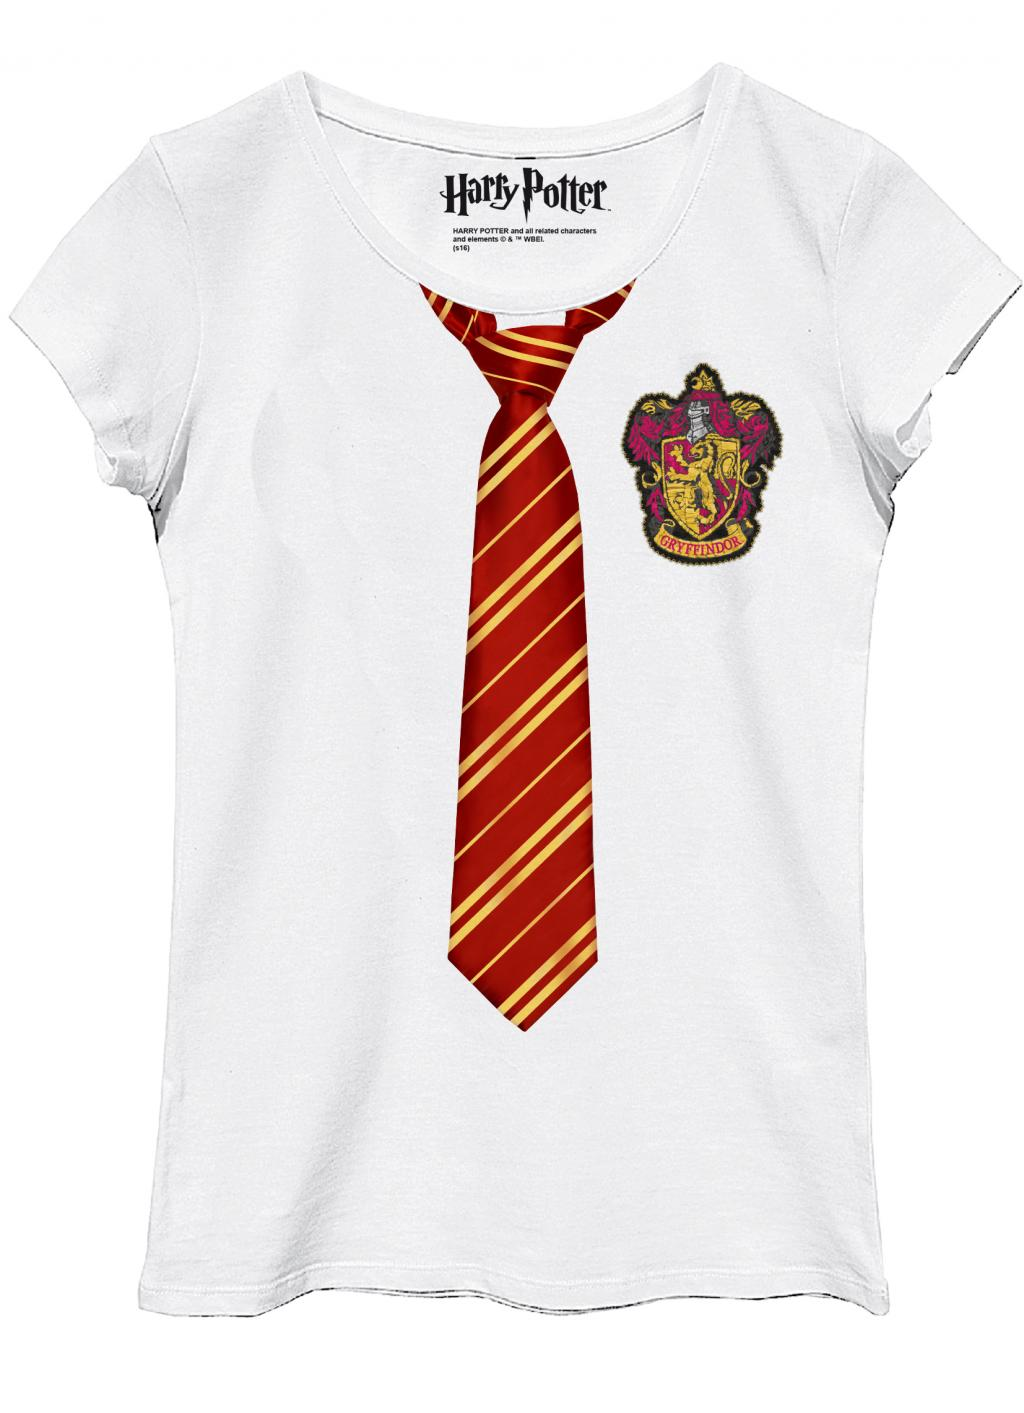 HARRY POTTER - T-Shirt Gryffindor Disguise - GIRL (L)_2